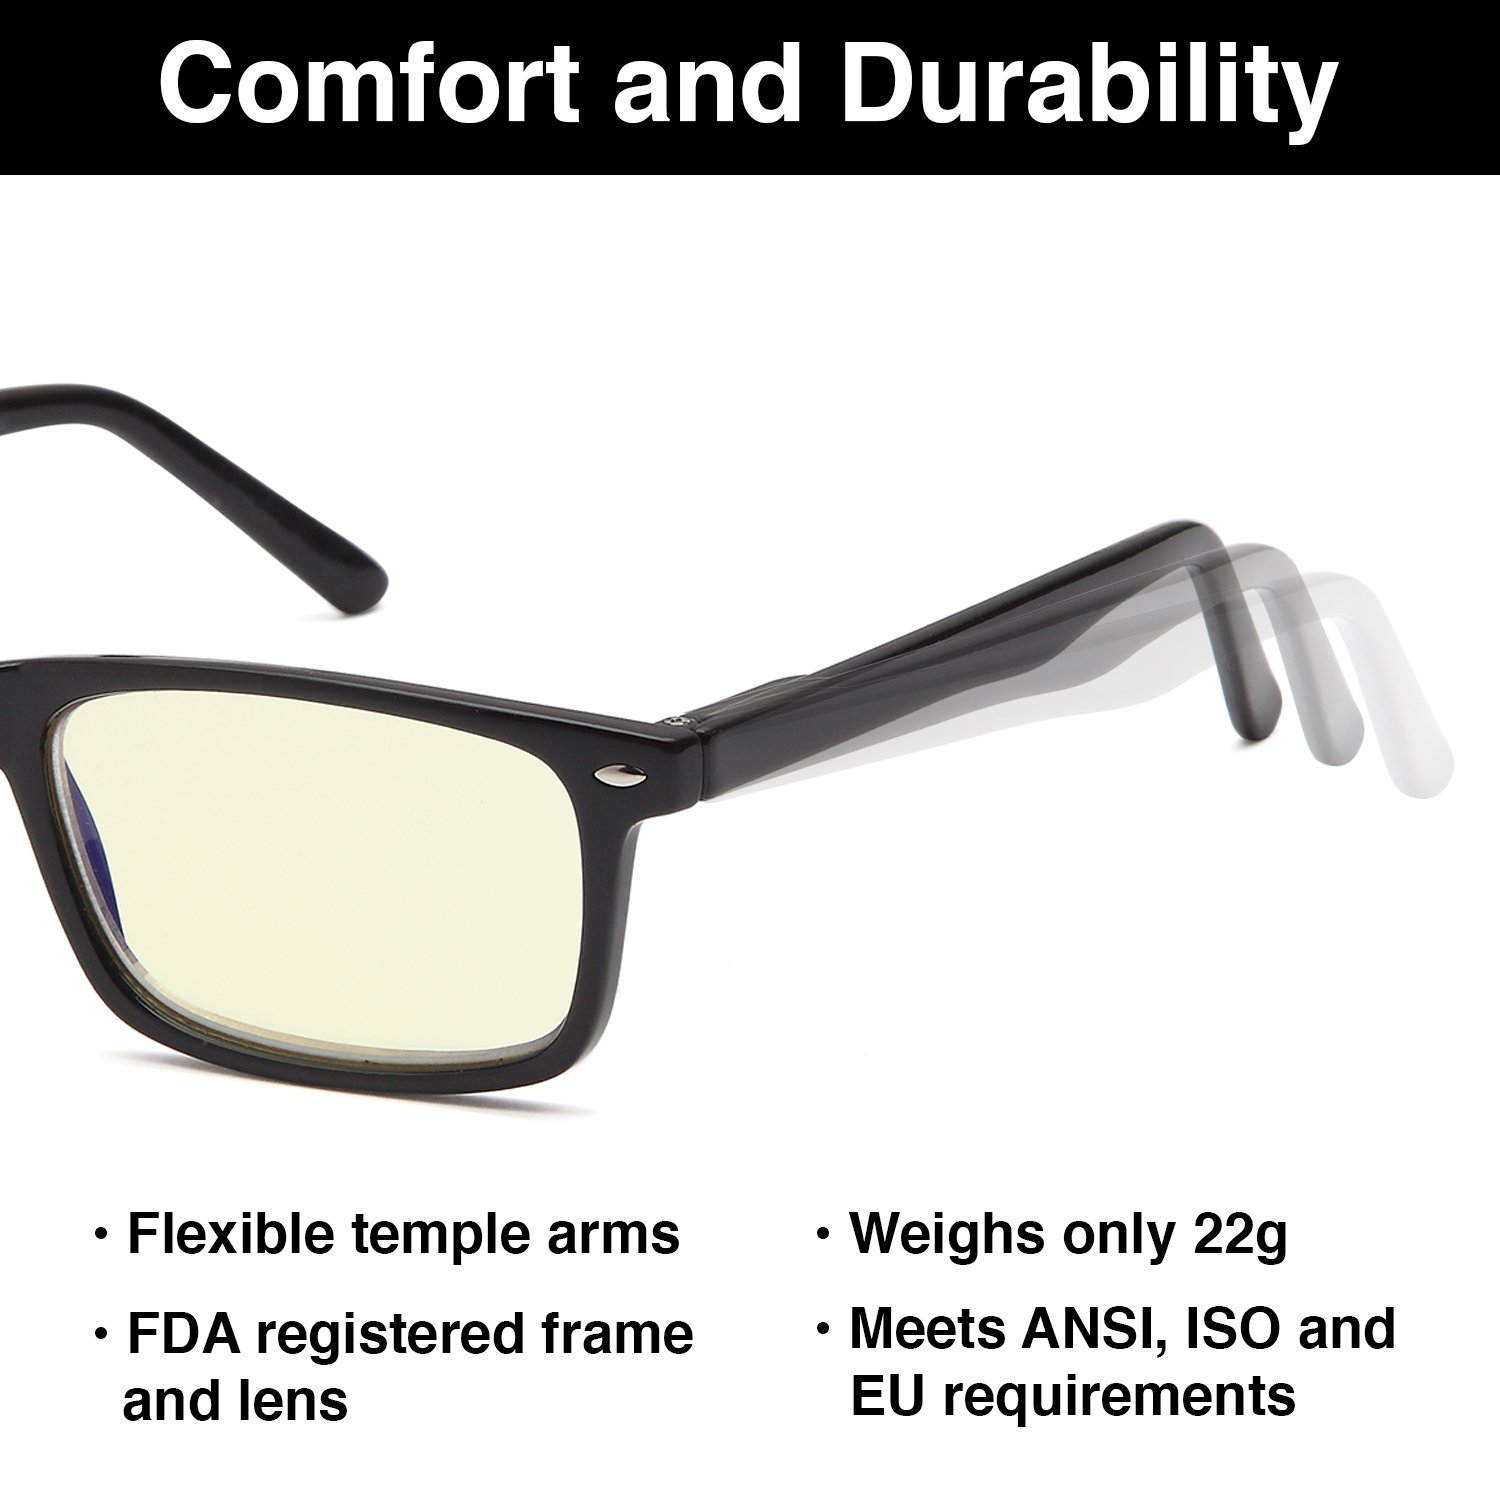 Gamma RAY 899 Computer Readers UV Protection, Anti Glare, Anti Blue Light Eyeglasses, Spring Hinge Video Gaming Frames - with 0.00x Magnification by Gamma Ray Optics (Image #6)